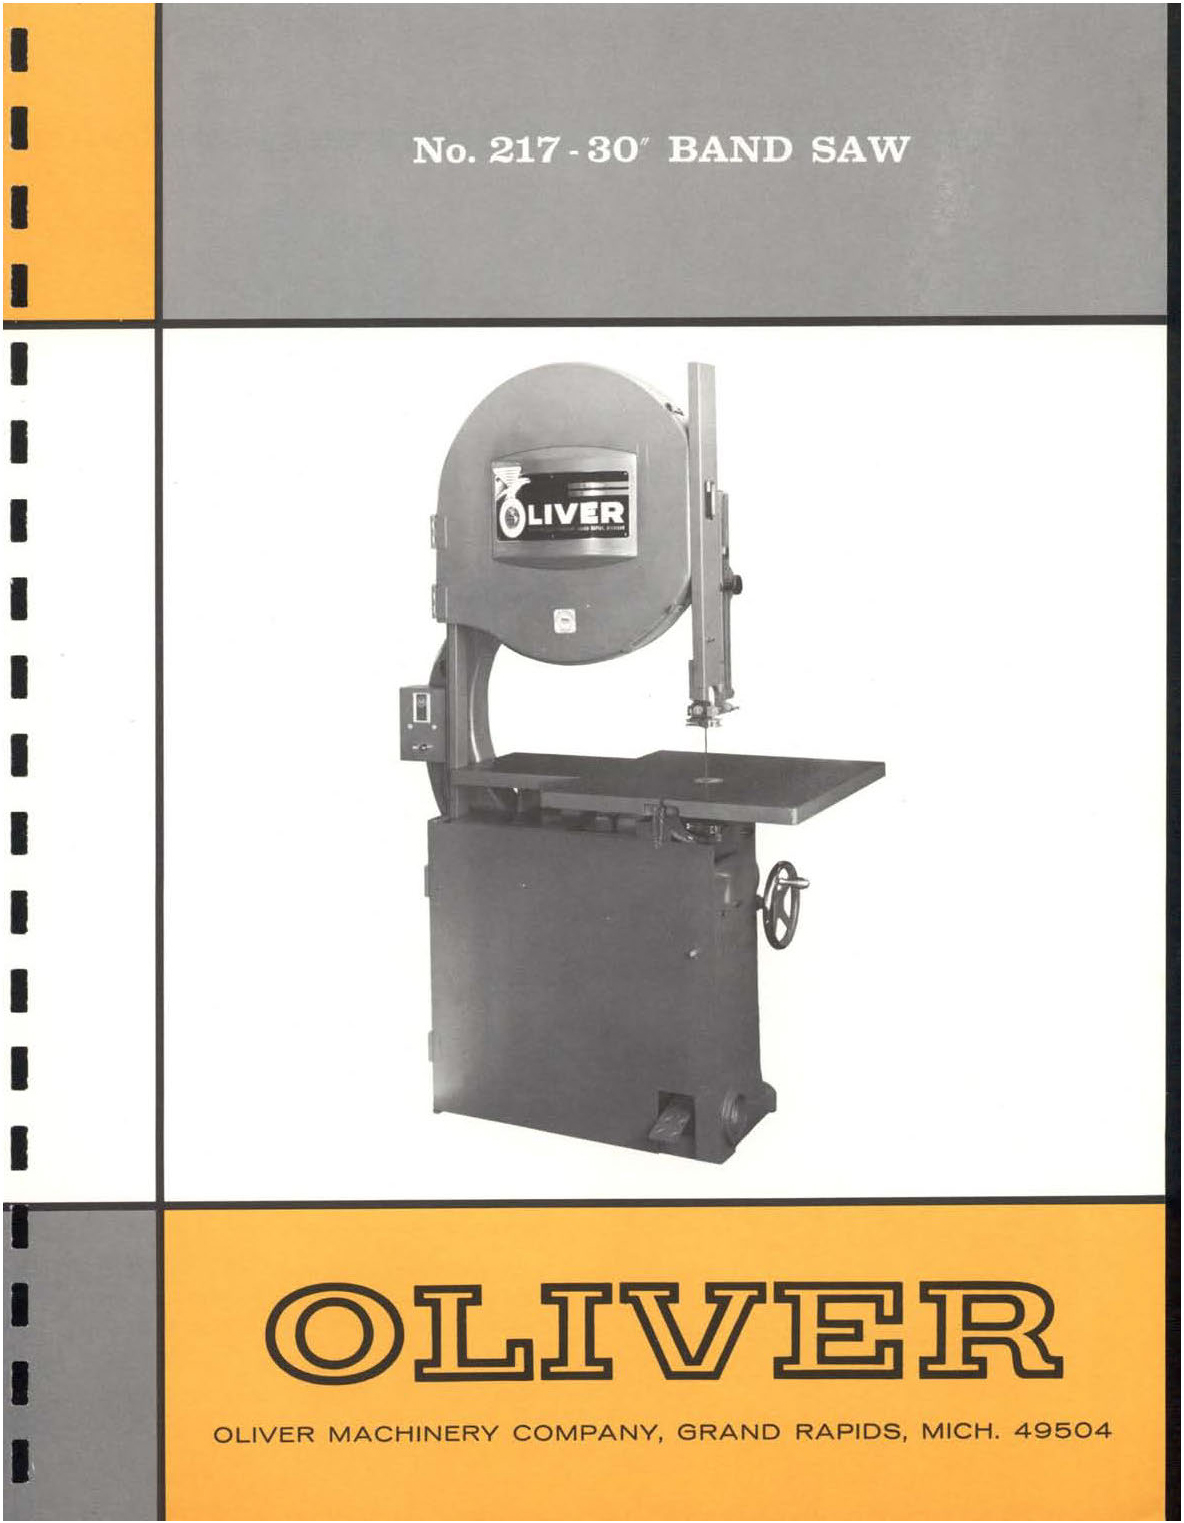 OLIVER Woodworking Machinery Manuals